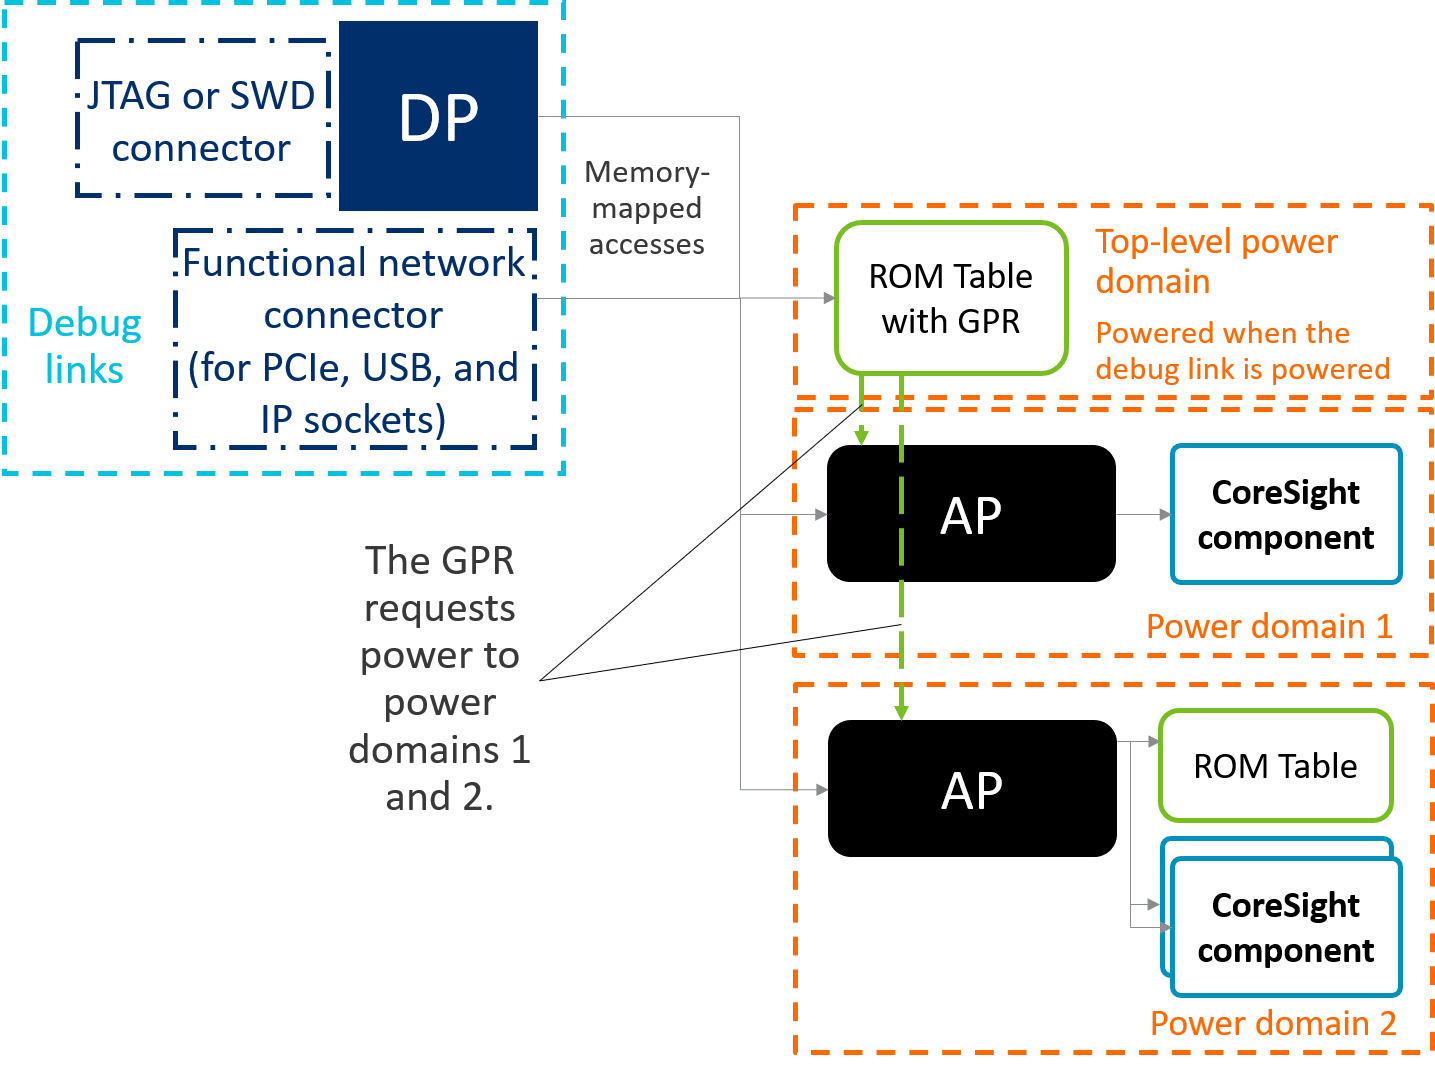 Diagram of an ADIv6 system with a GPR in the ROM Table